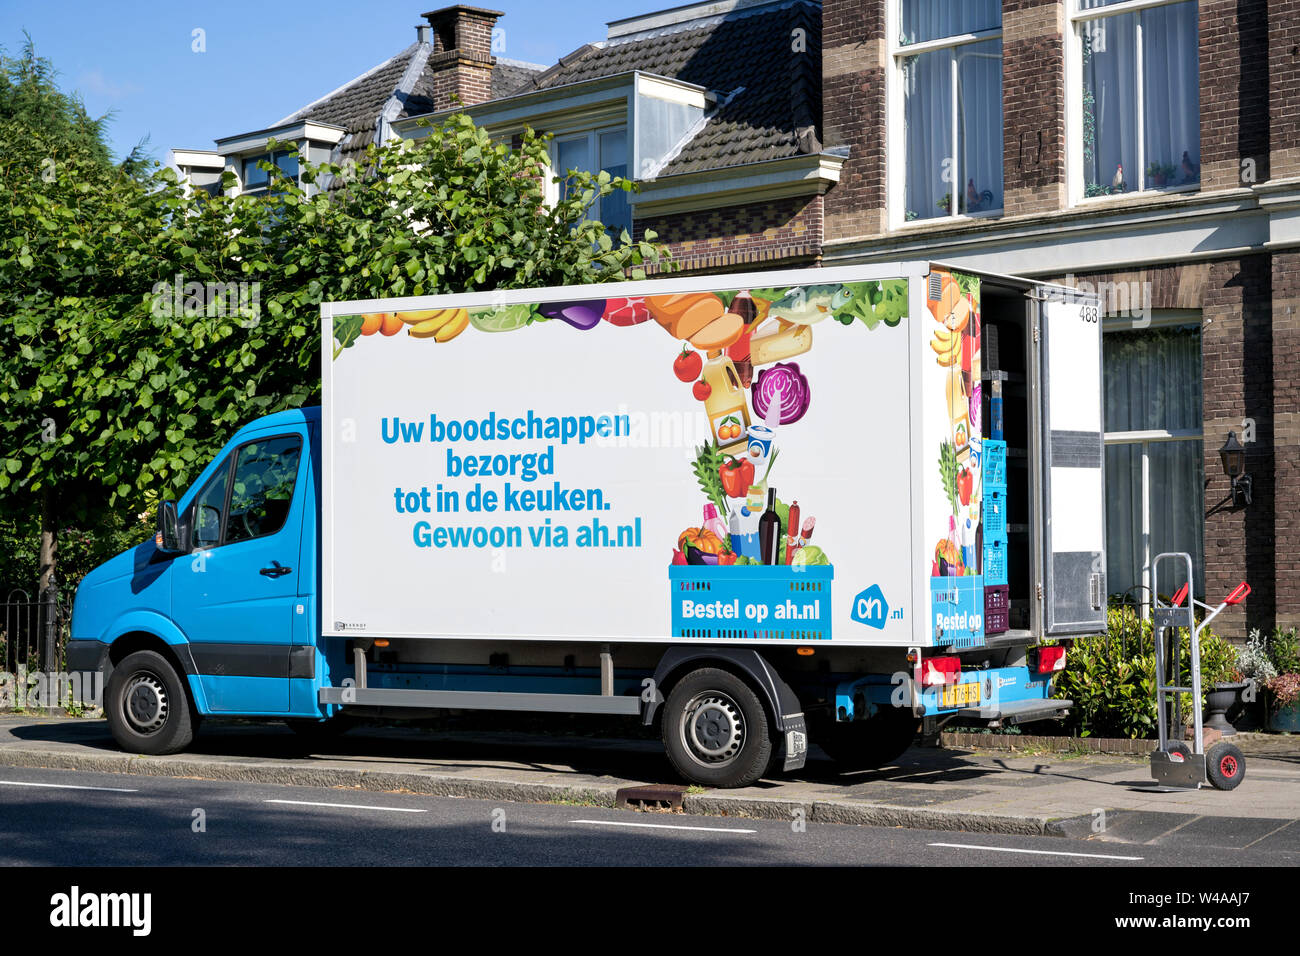 Dutch Delivery High Resolution Stock Photography And Images Alamy - Keuken Van Levine